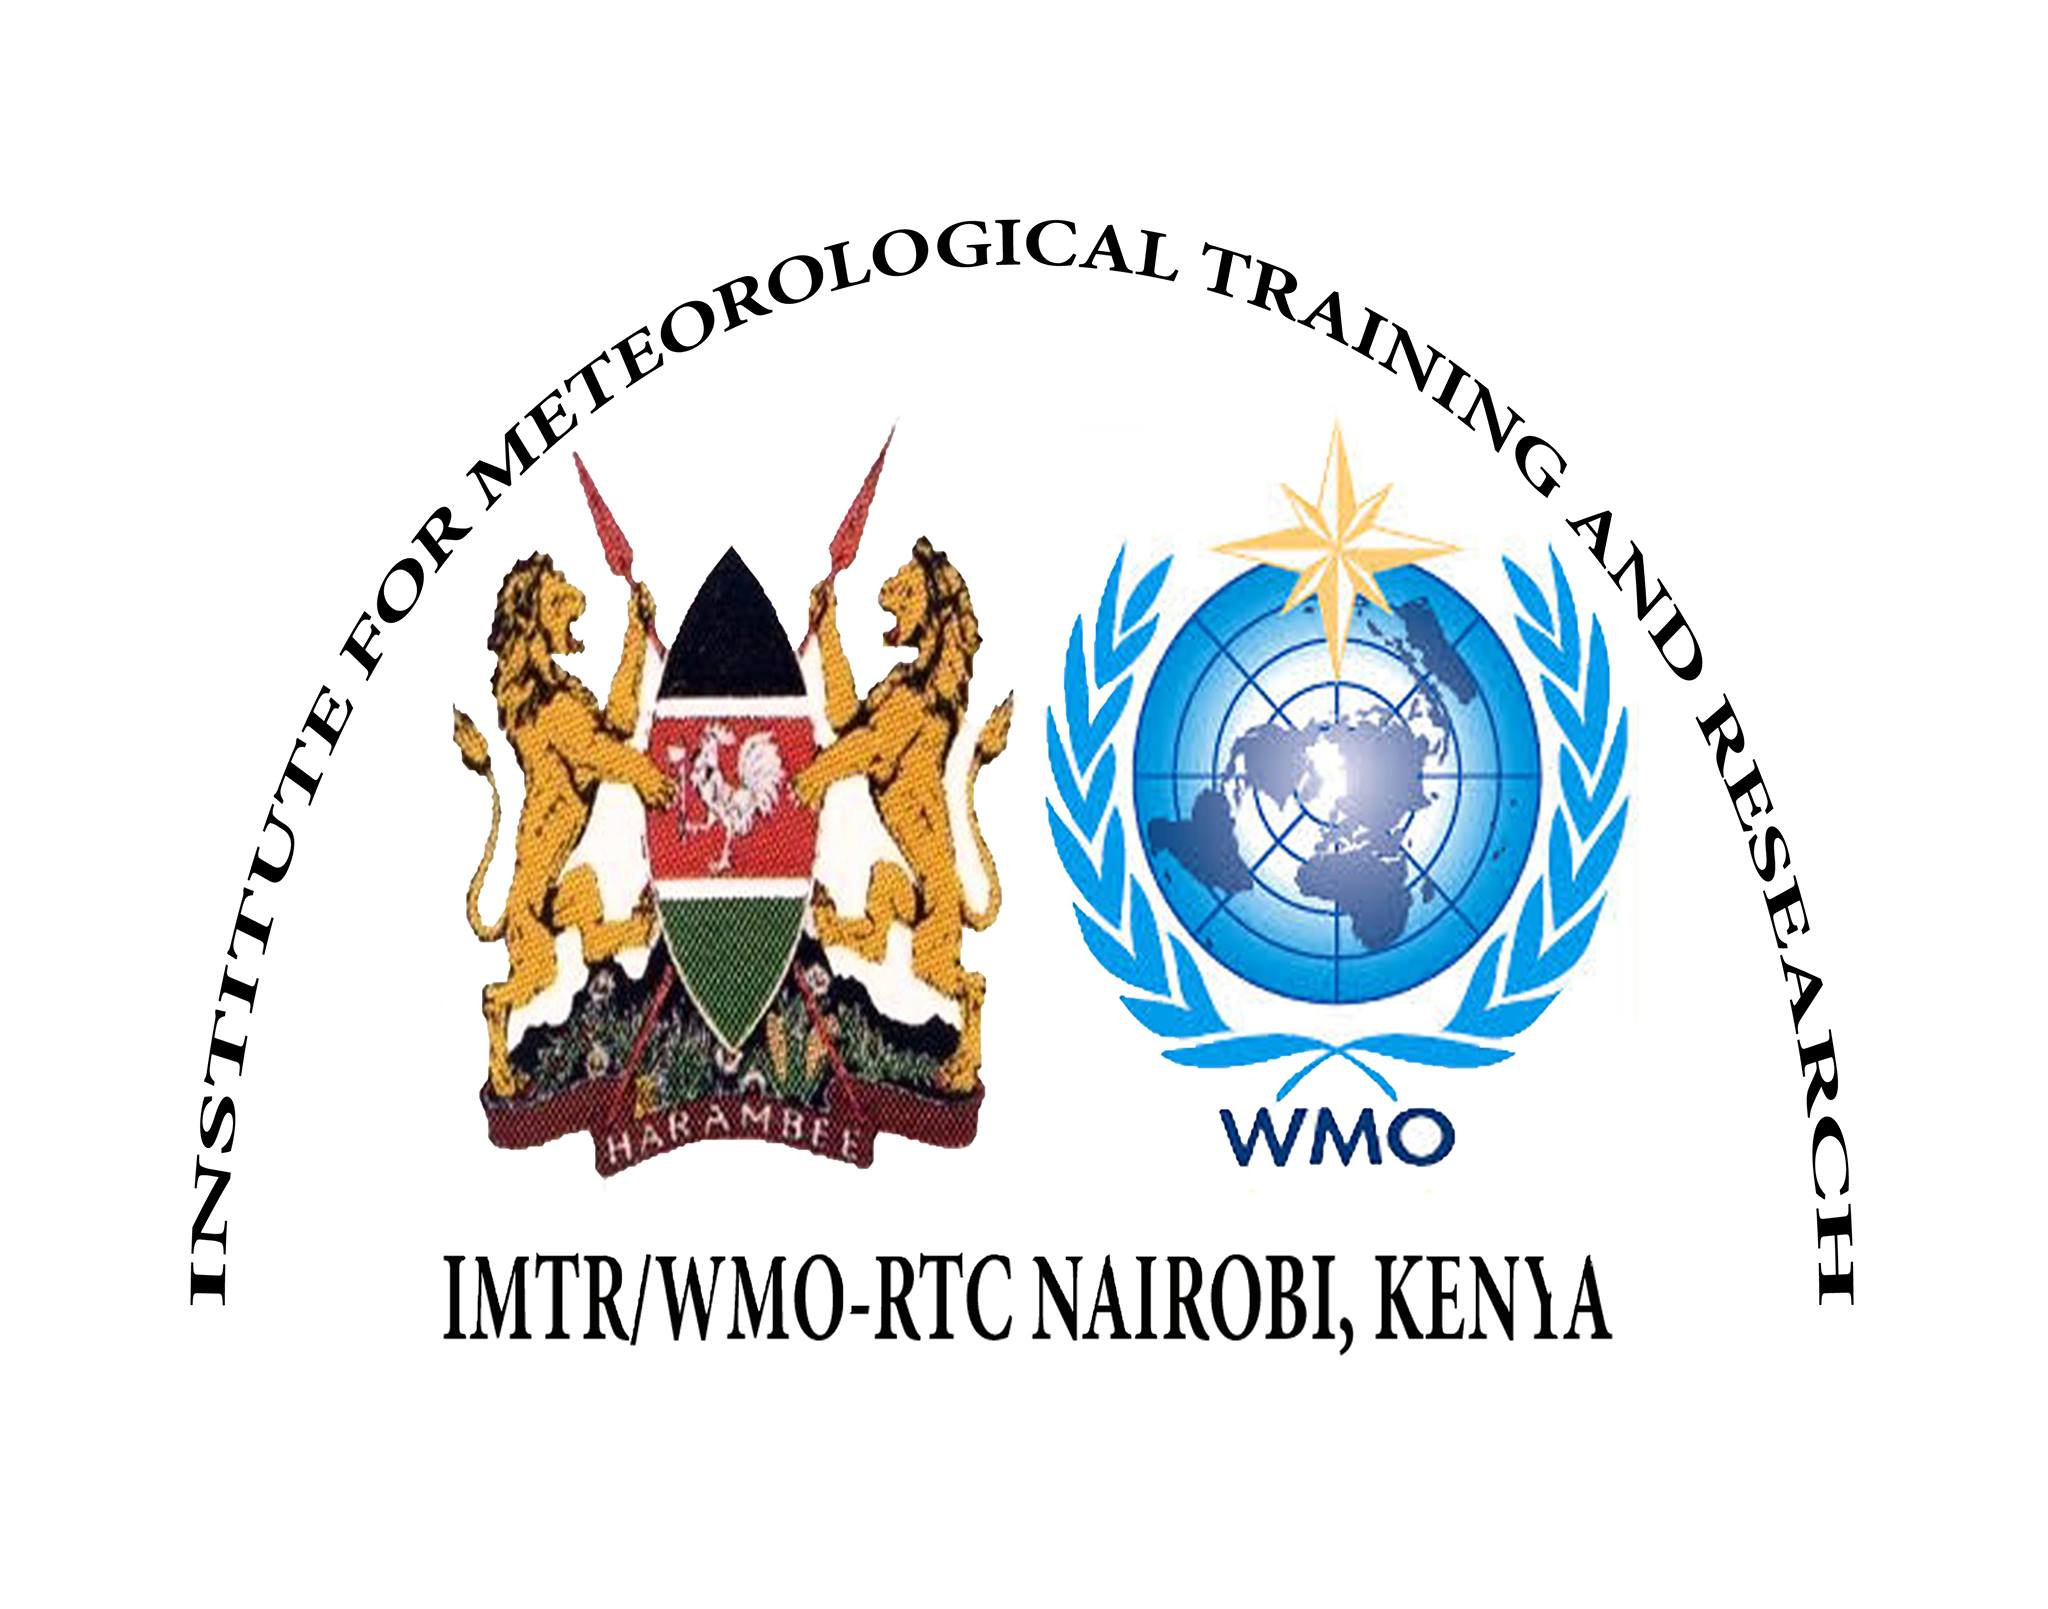 Institute for Meteorological Training and Research